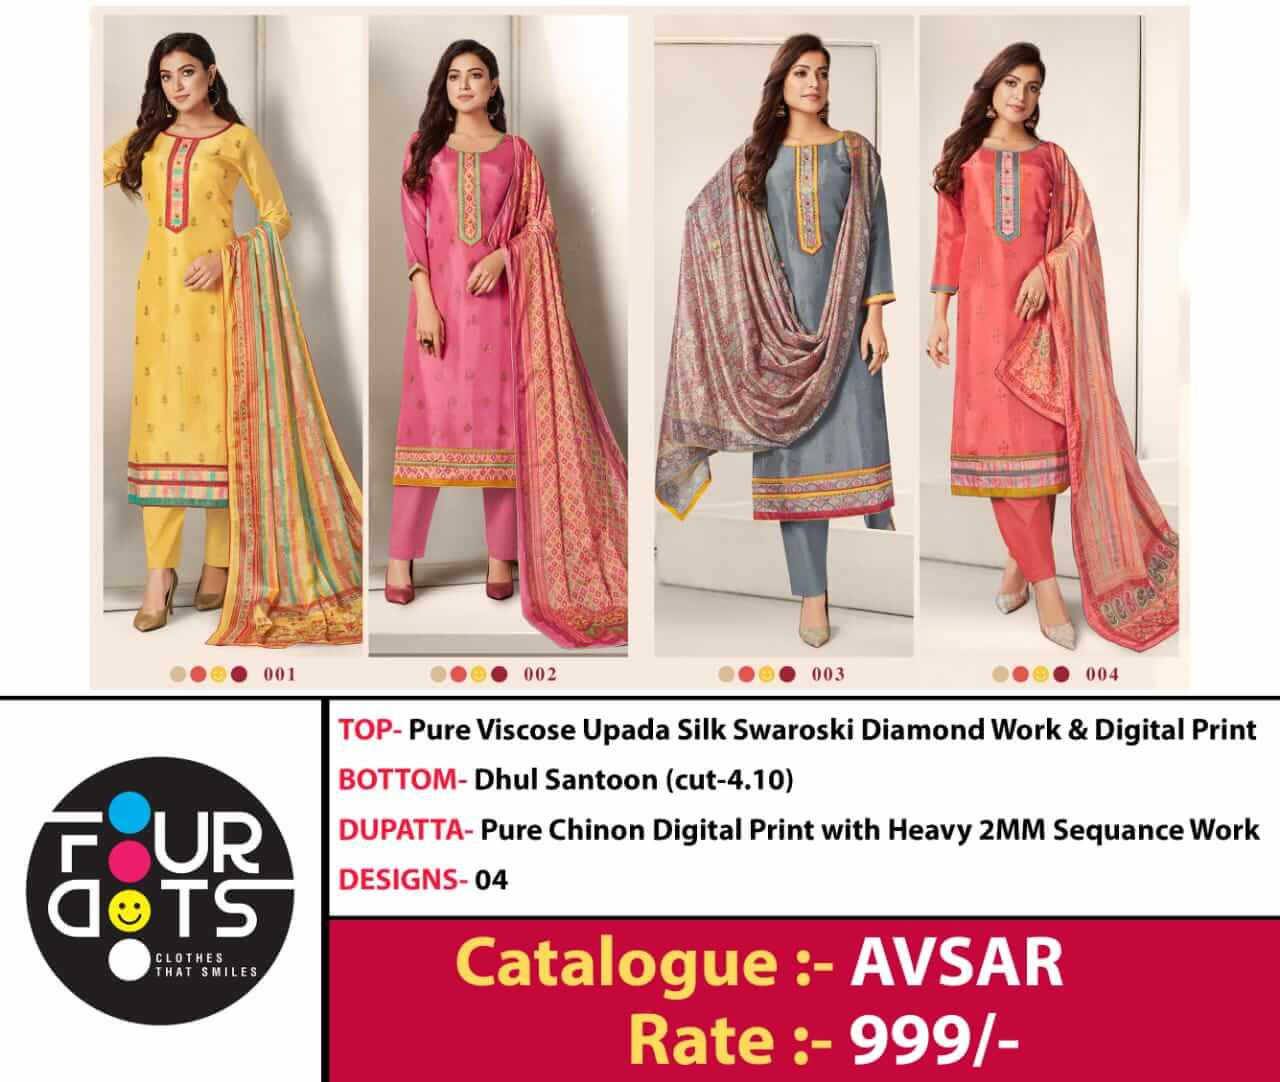 Four Dots Avsar collection 4